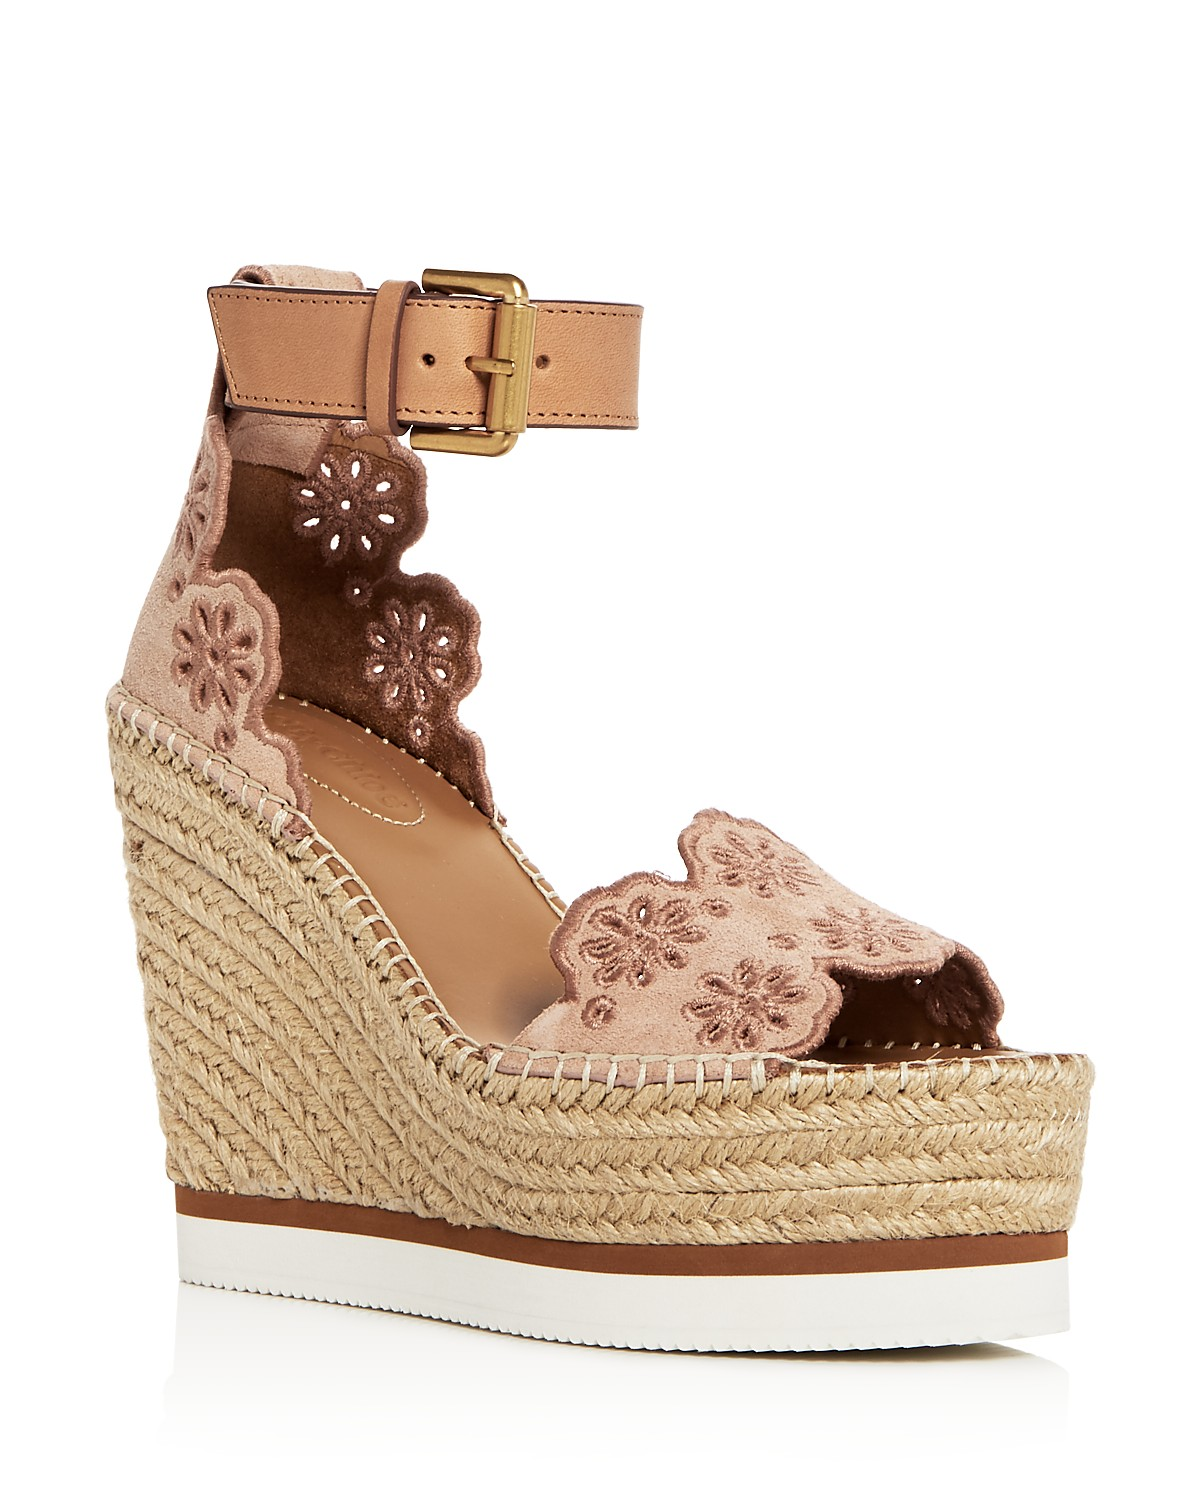 Chloé Cutout Wedges Sandals clearance lowest price clearance top quality OrhHp